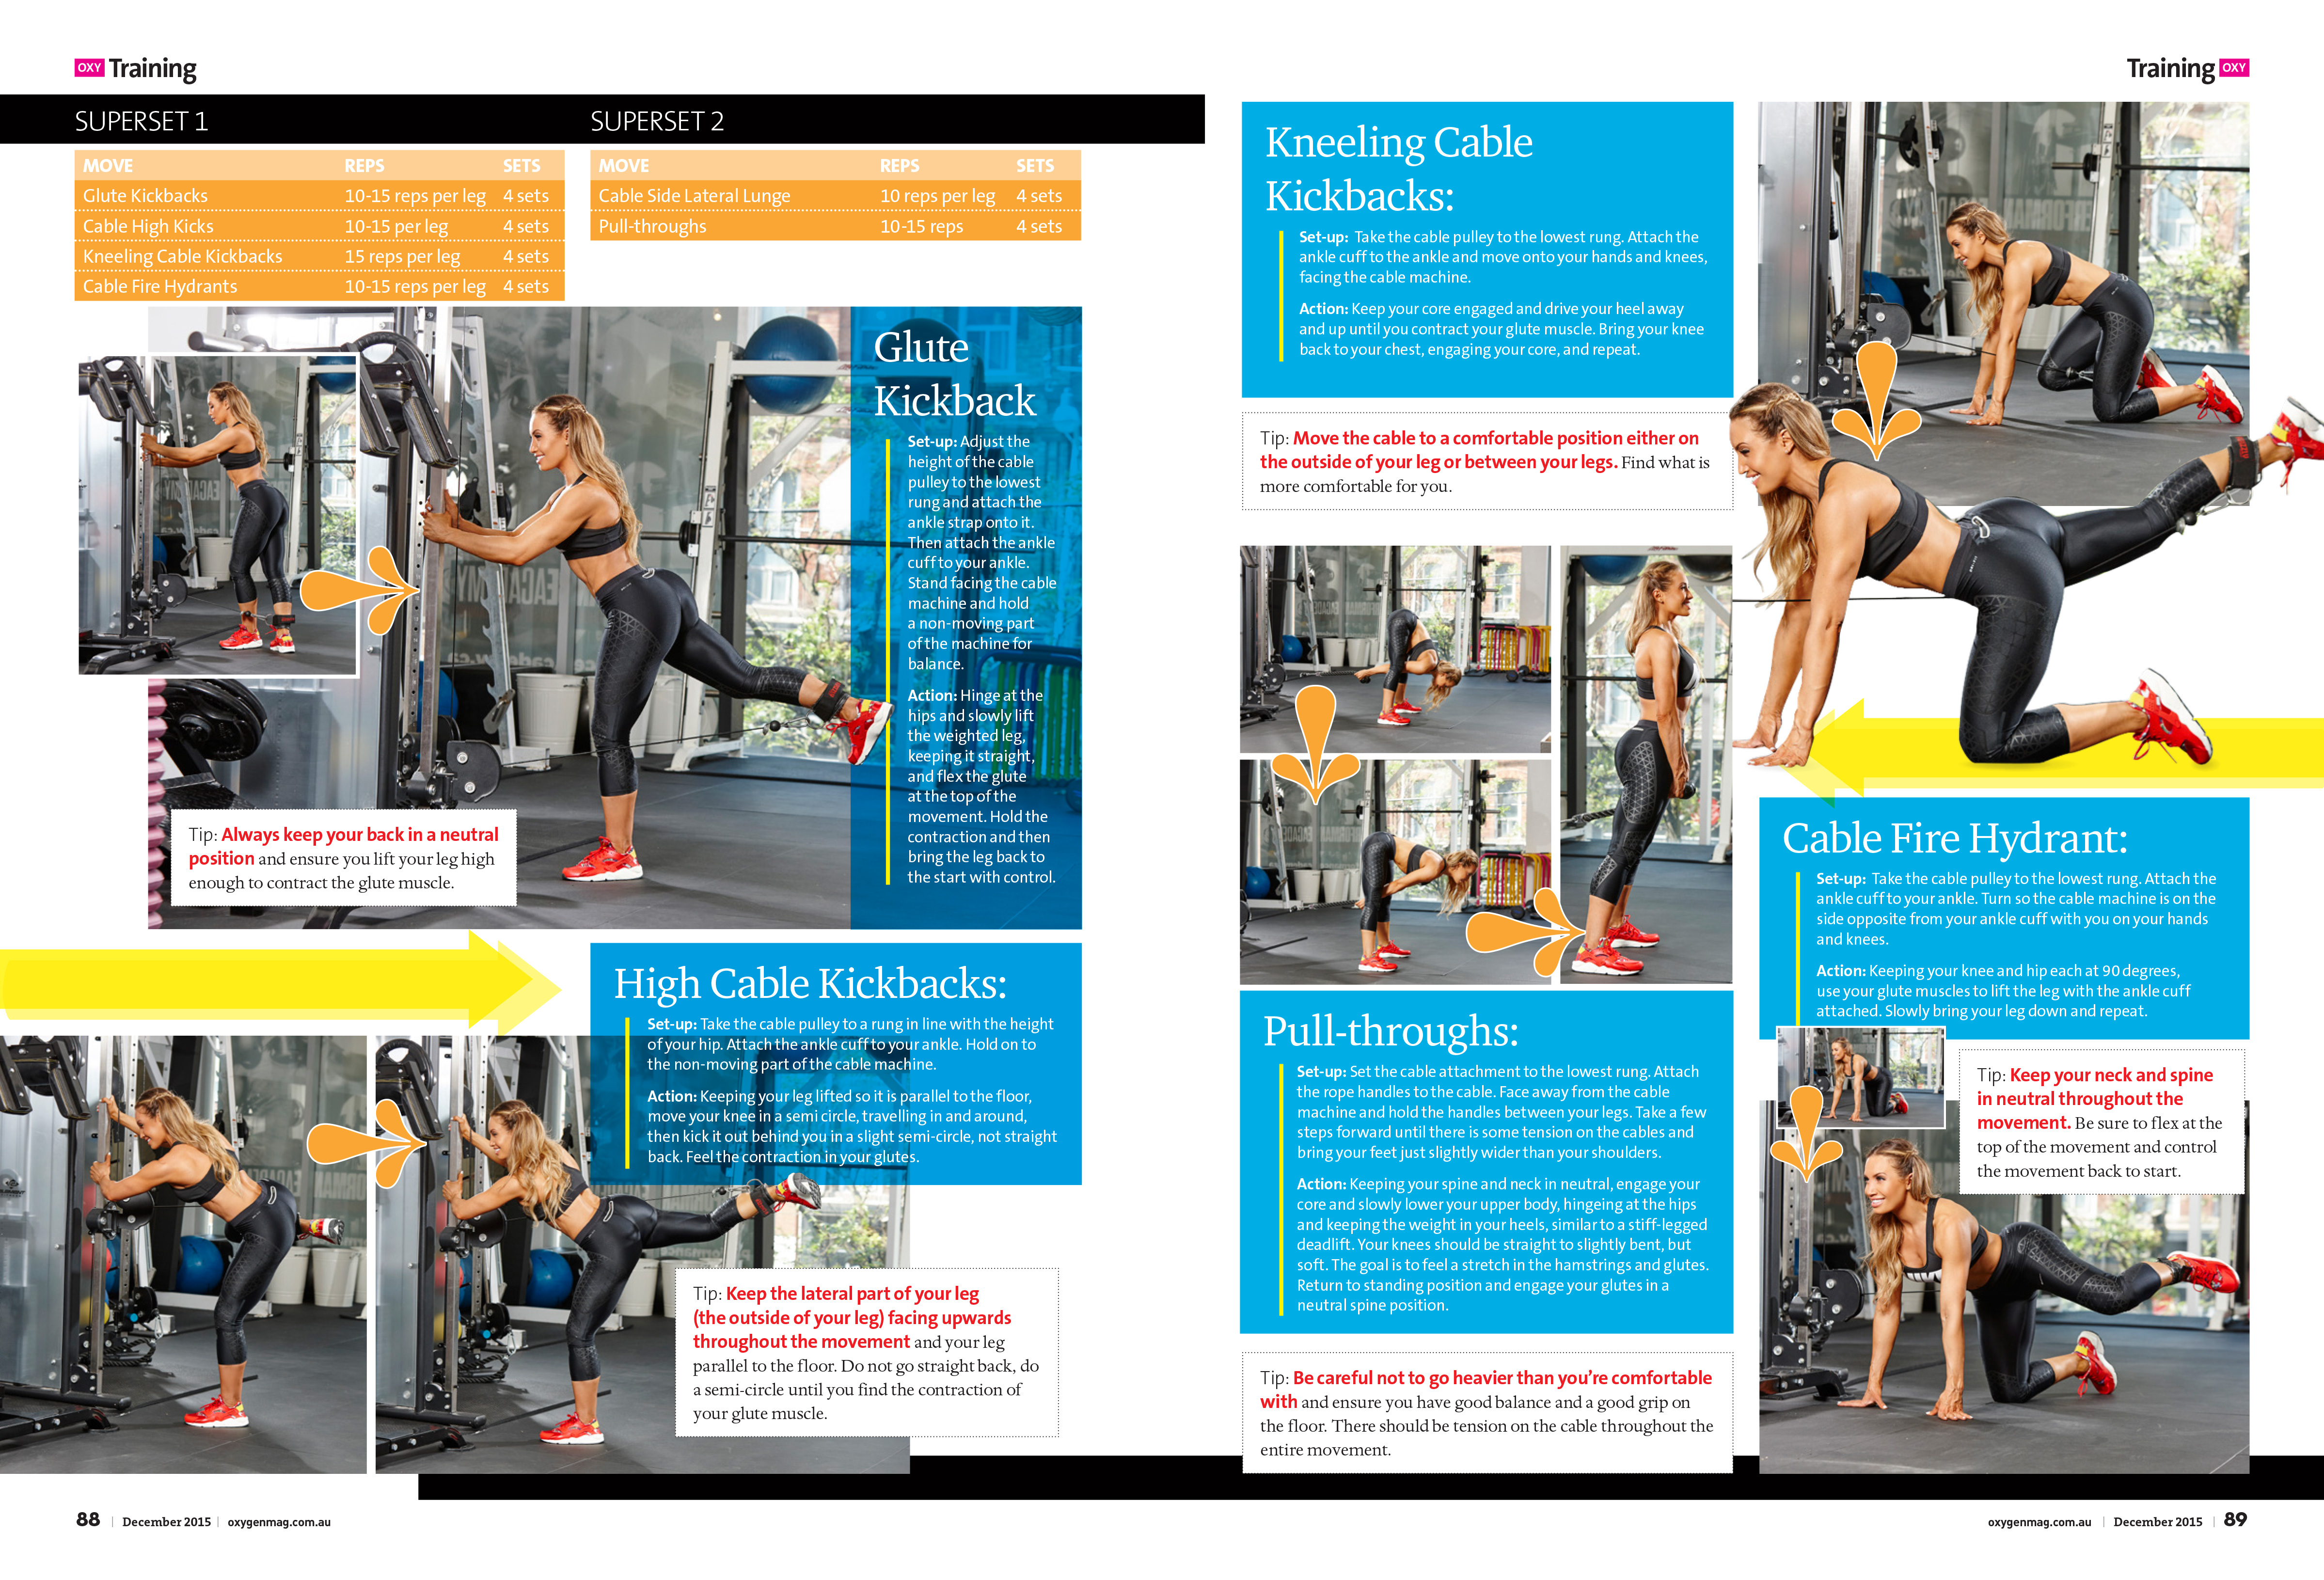 086-090_TRAINING_GLUTE_CABLE_WORKOUT_OXY81#0002